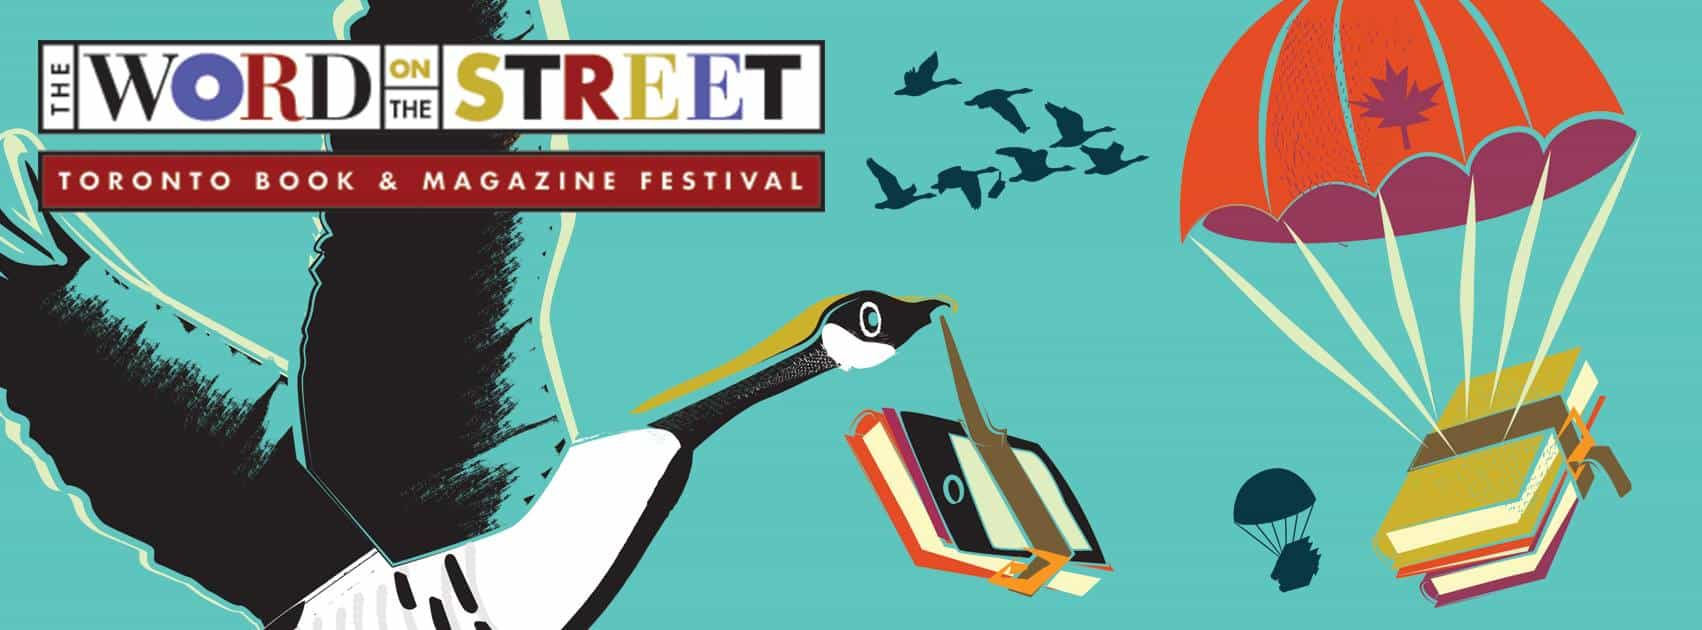 Word On The Street, a national celebration of literacy, is happening this Sunday